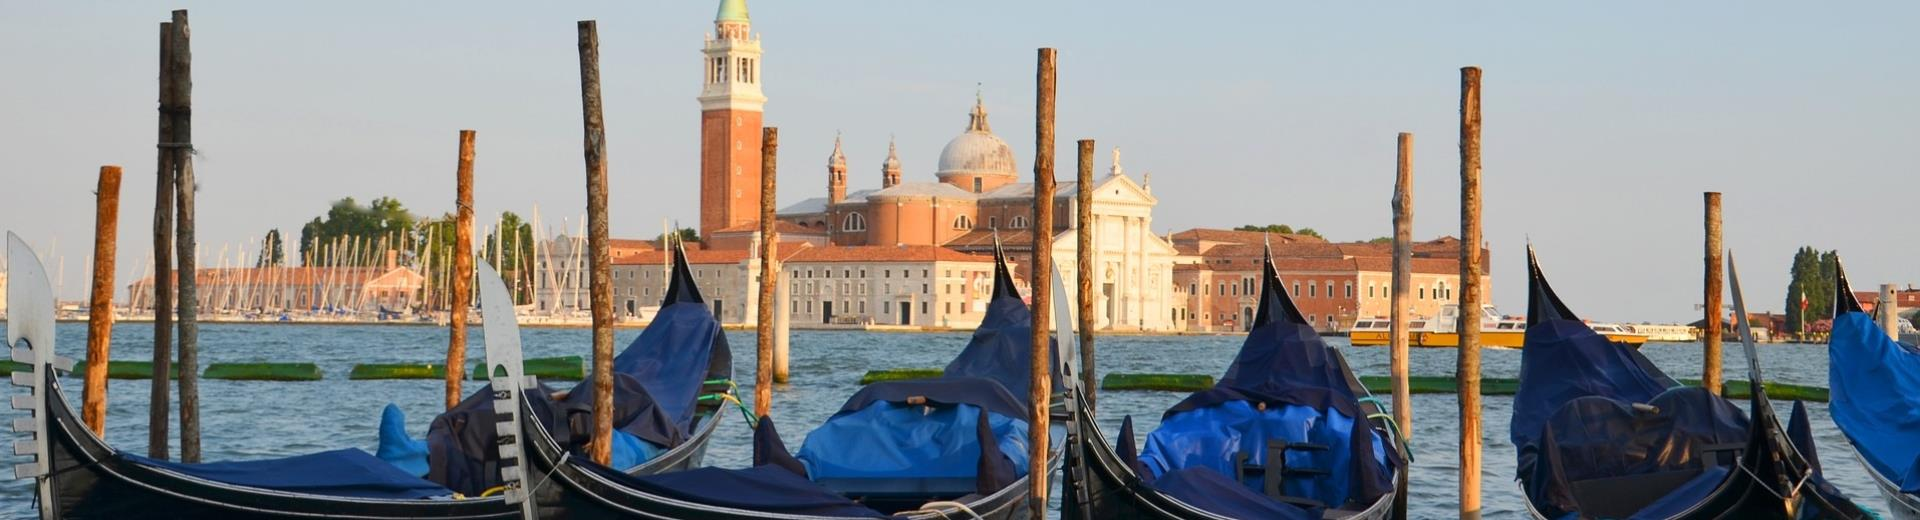 Stays the Best Western Plus Hotel Galileo and visit Venice, less than half an hour!